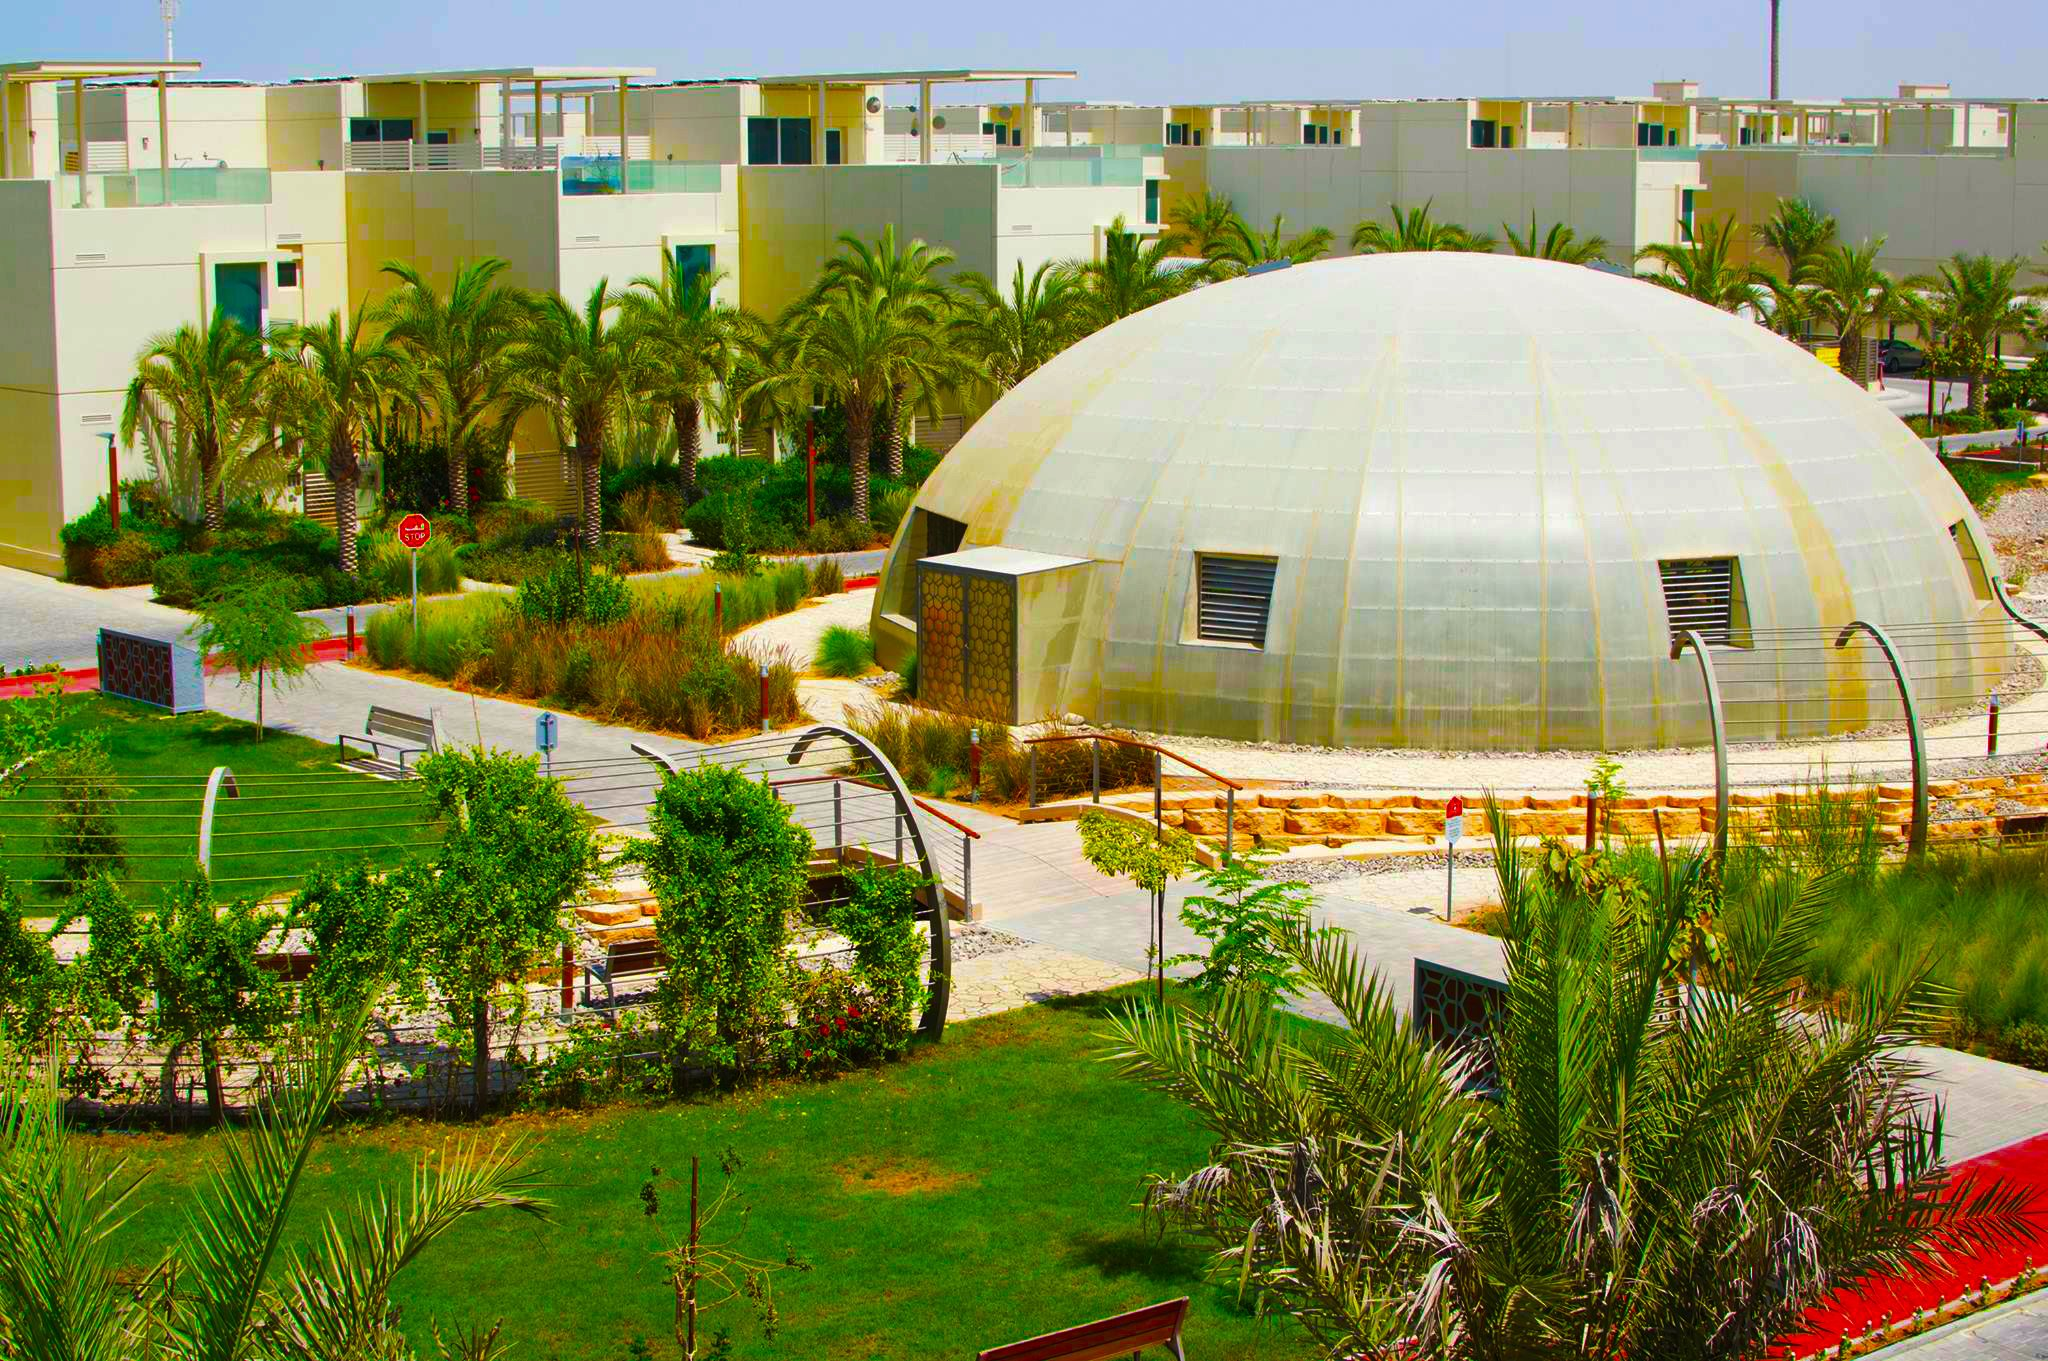 Photograph of the Fairgreen International School biodome in Dubai